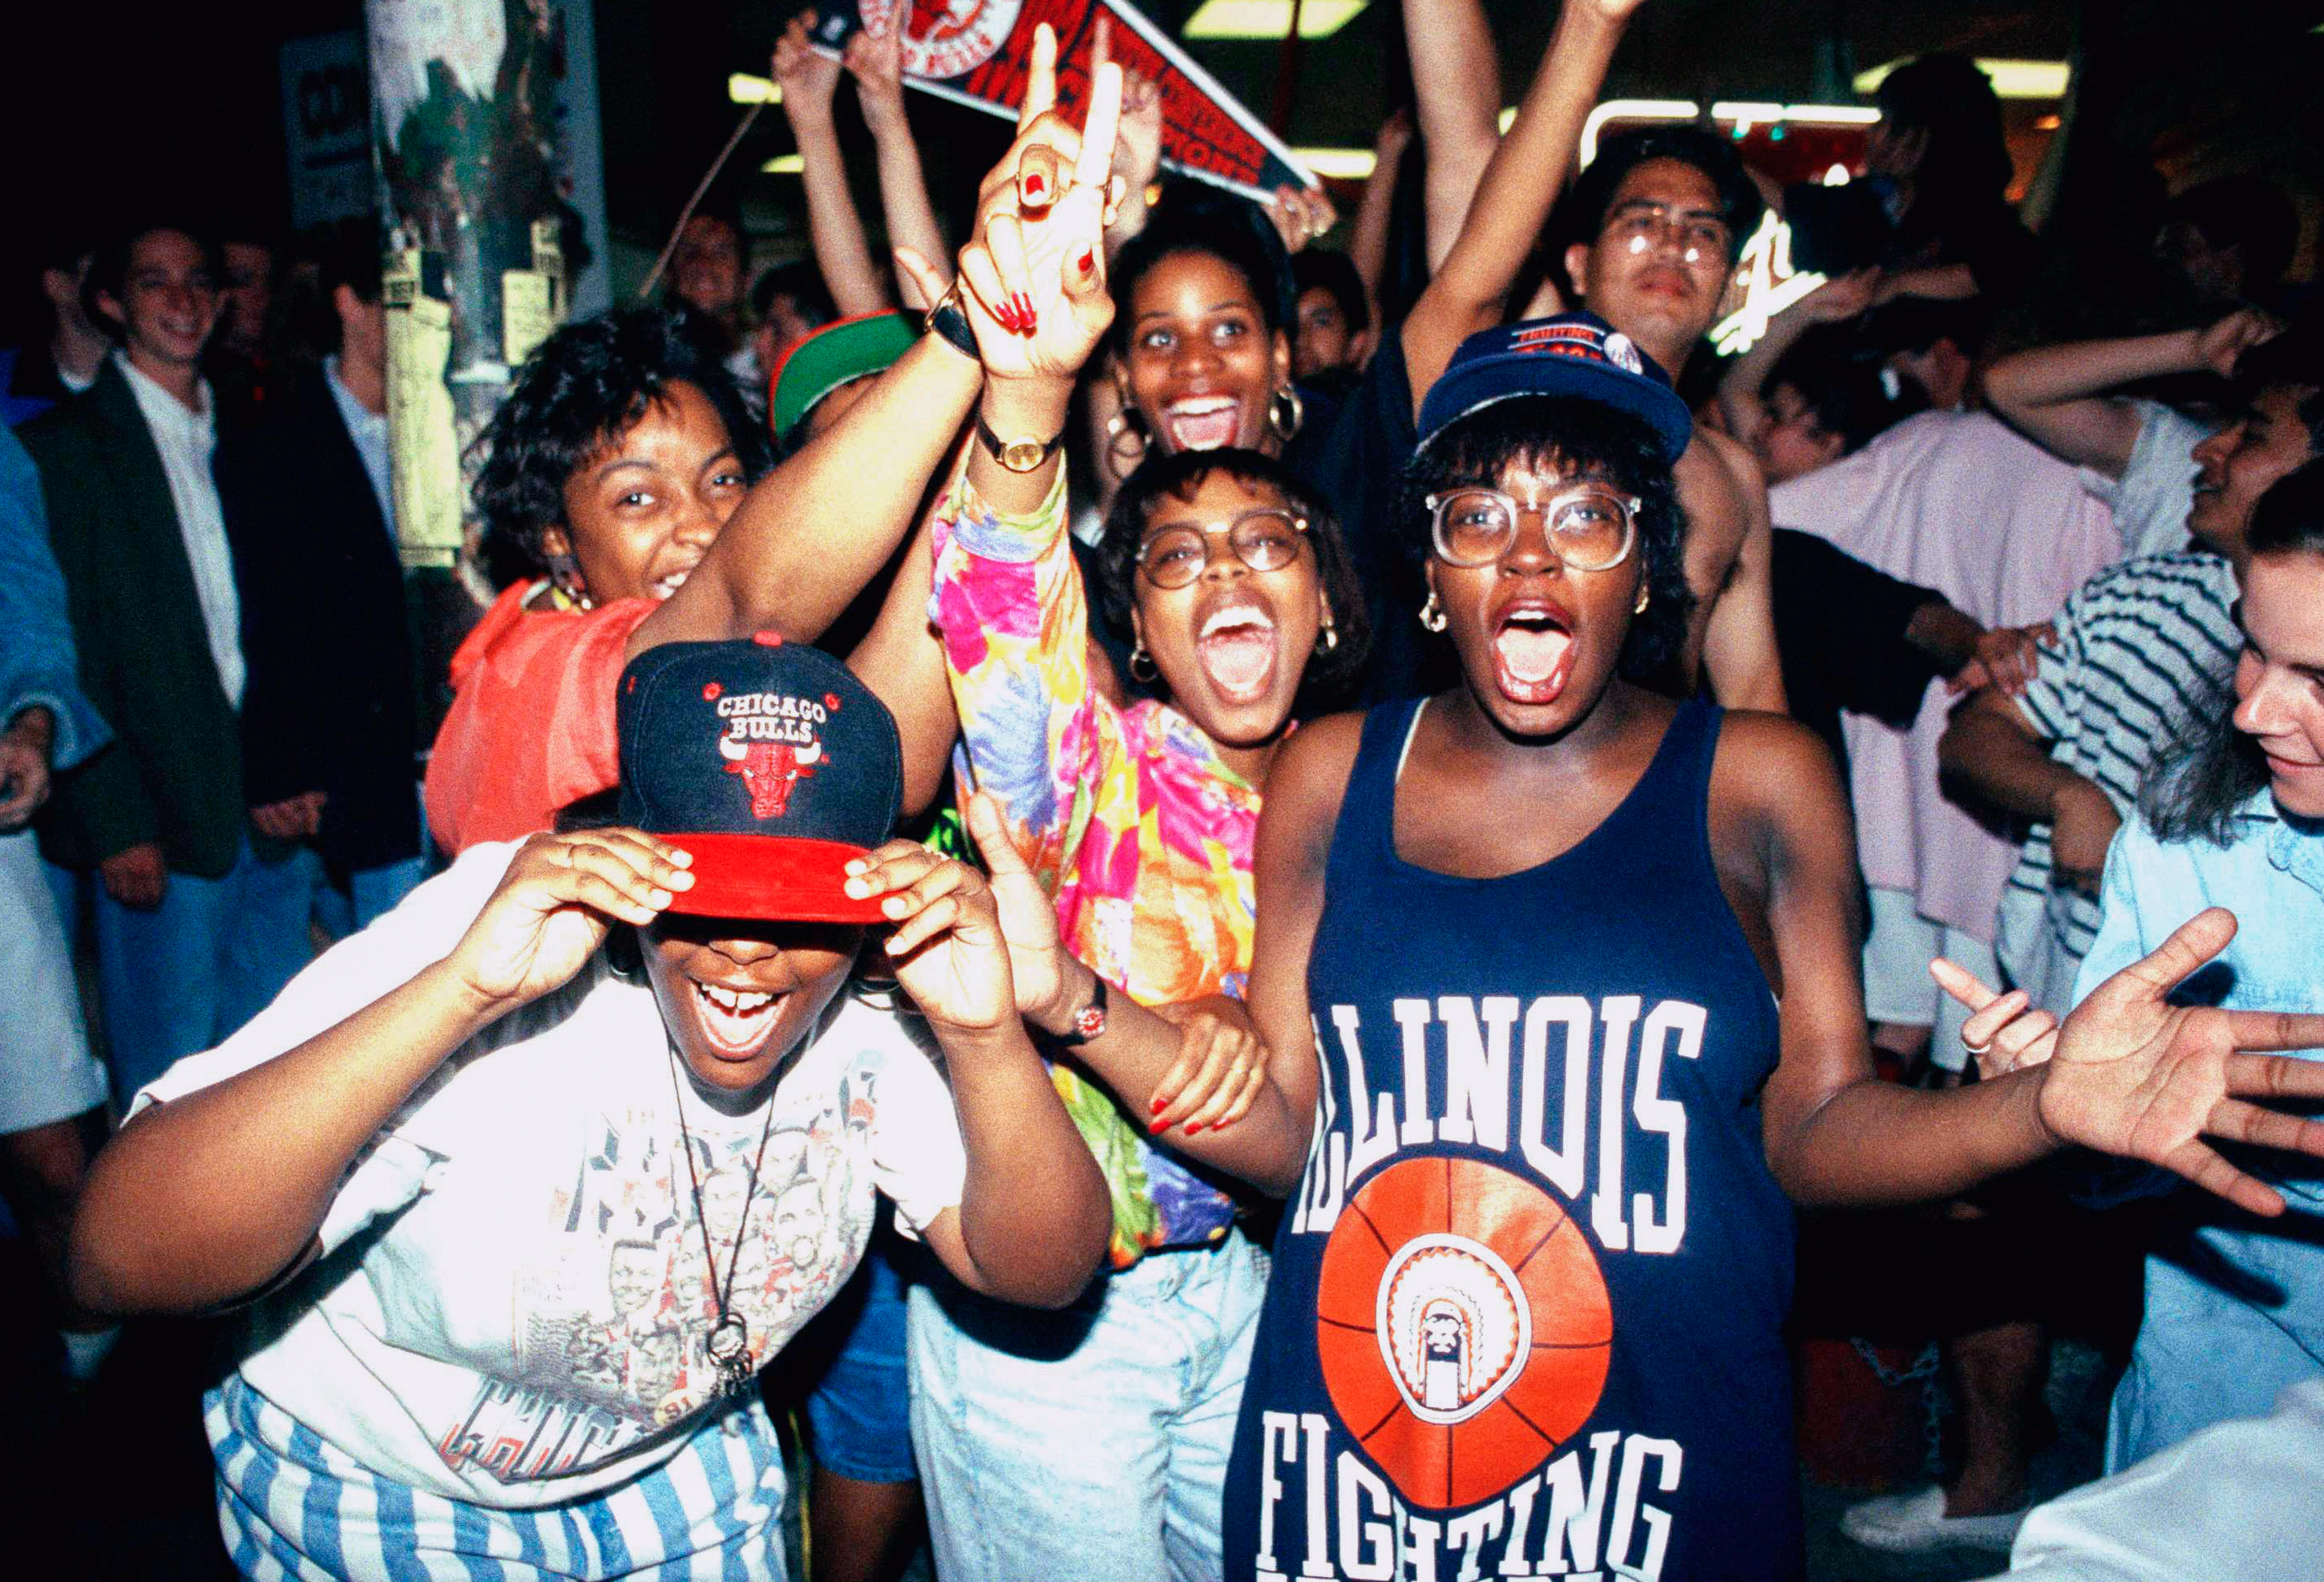 Chicago Bulls fans celebrate the Bulls' 97-93 win over the Portland Trail Blazers, in Chicago on June 14, 1992. The Bulls' second straight NBA title.